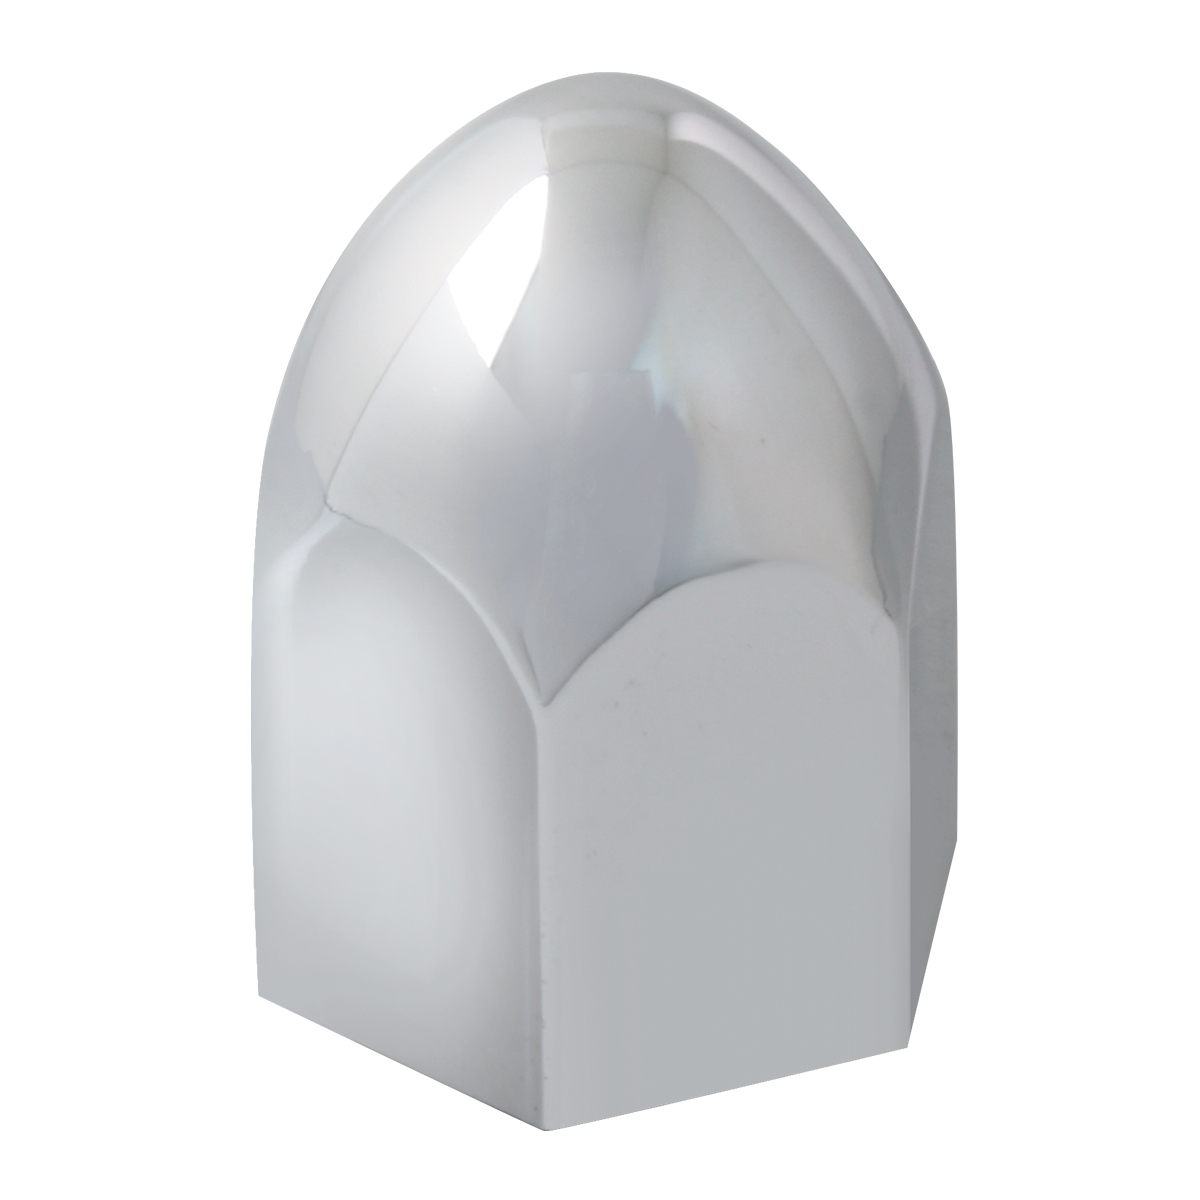 Bullet Shape Push-On Lug Cover Cover without Flange